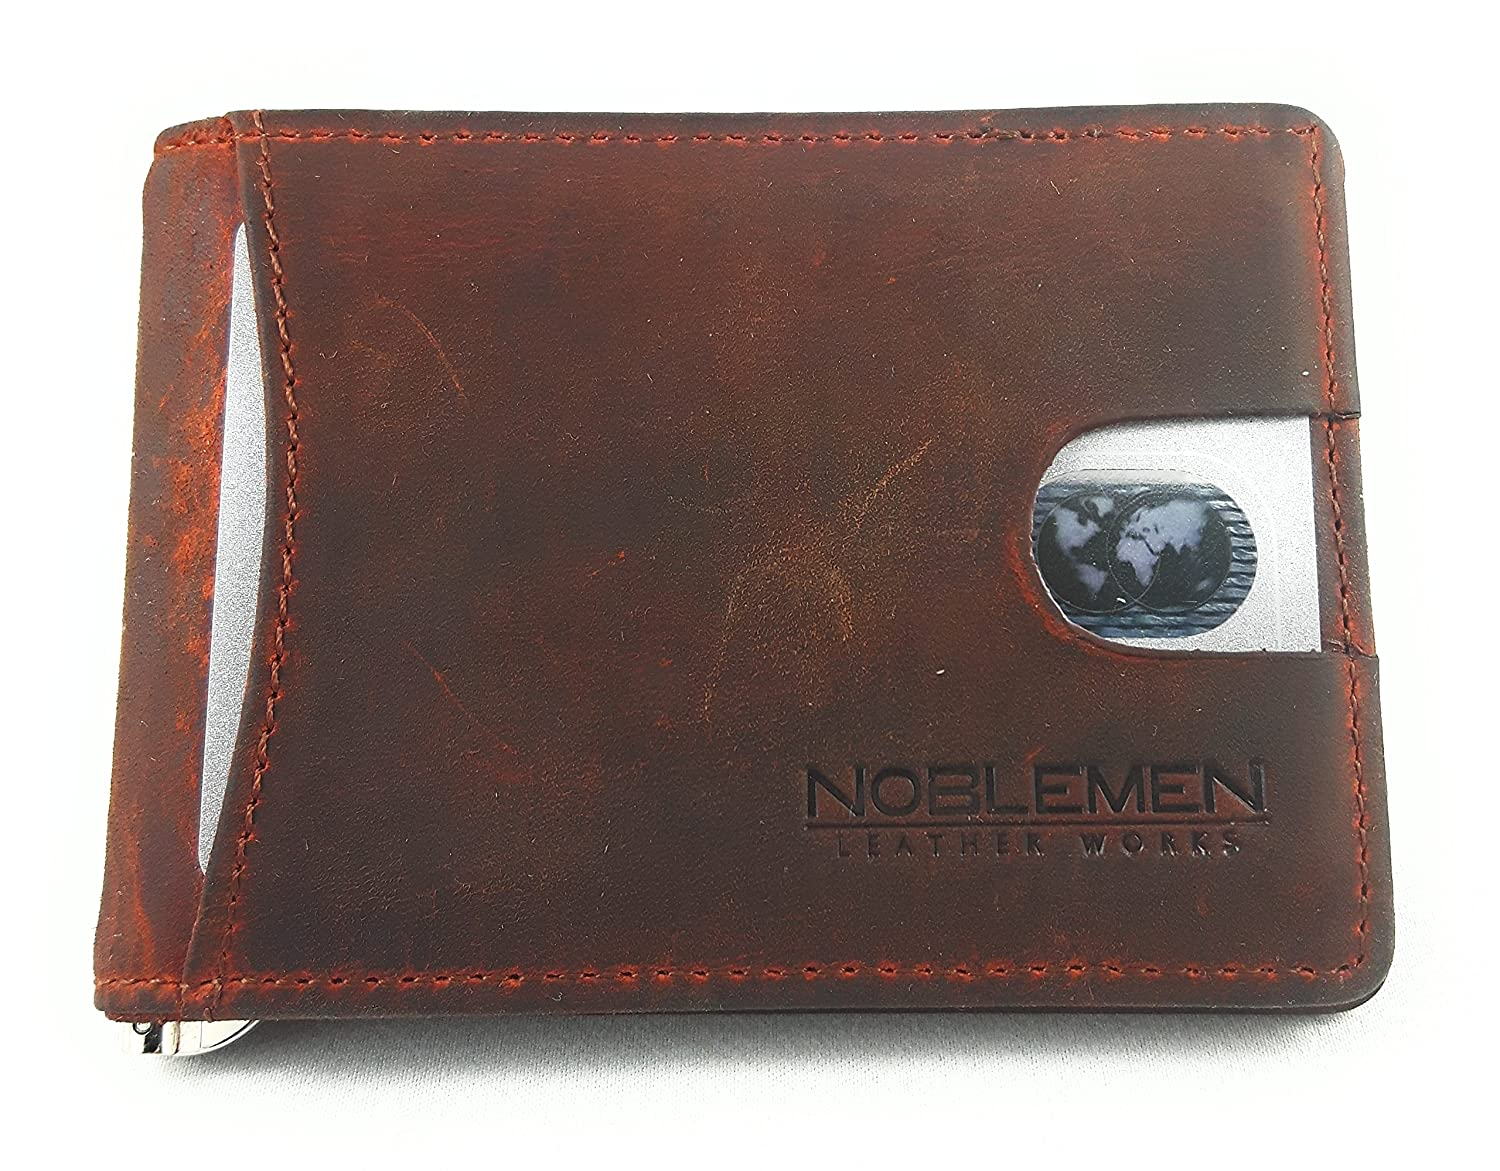 Noblemen Mens Leather Money Clip Minimalist Wallet | RFID Protection | ID Card Window